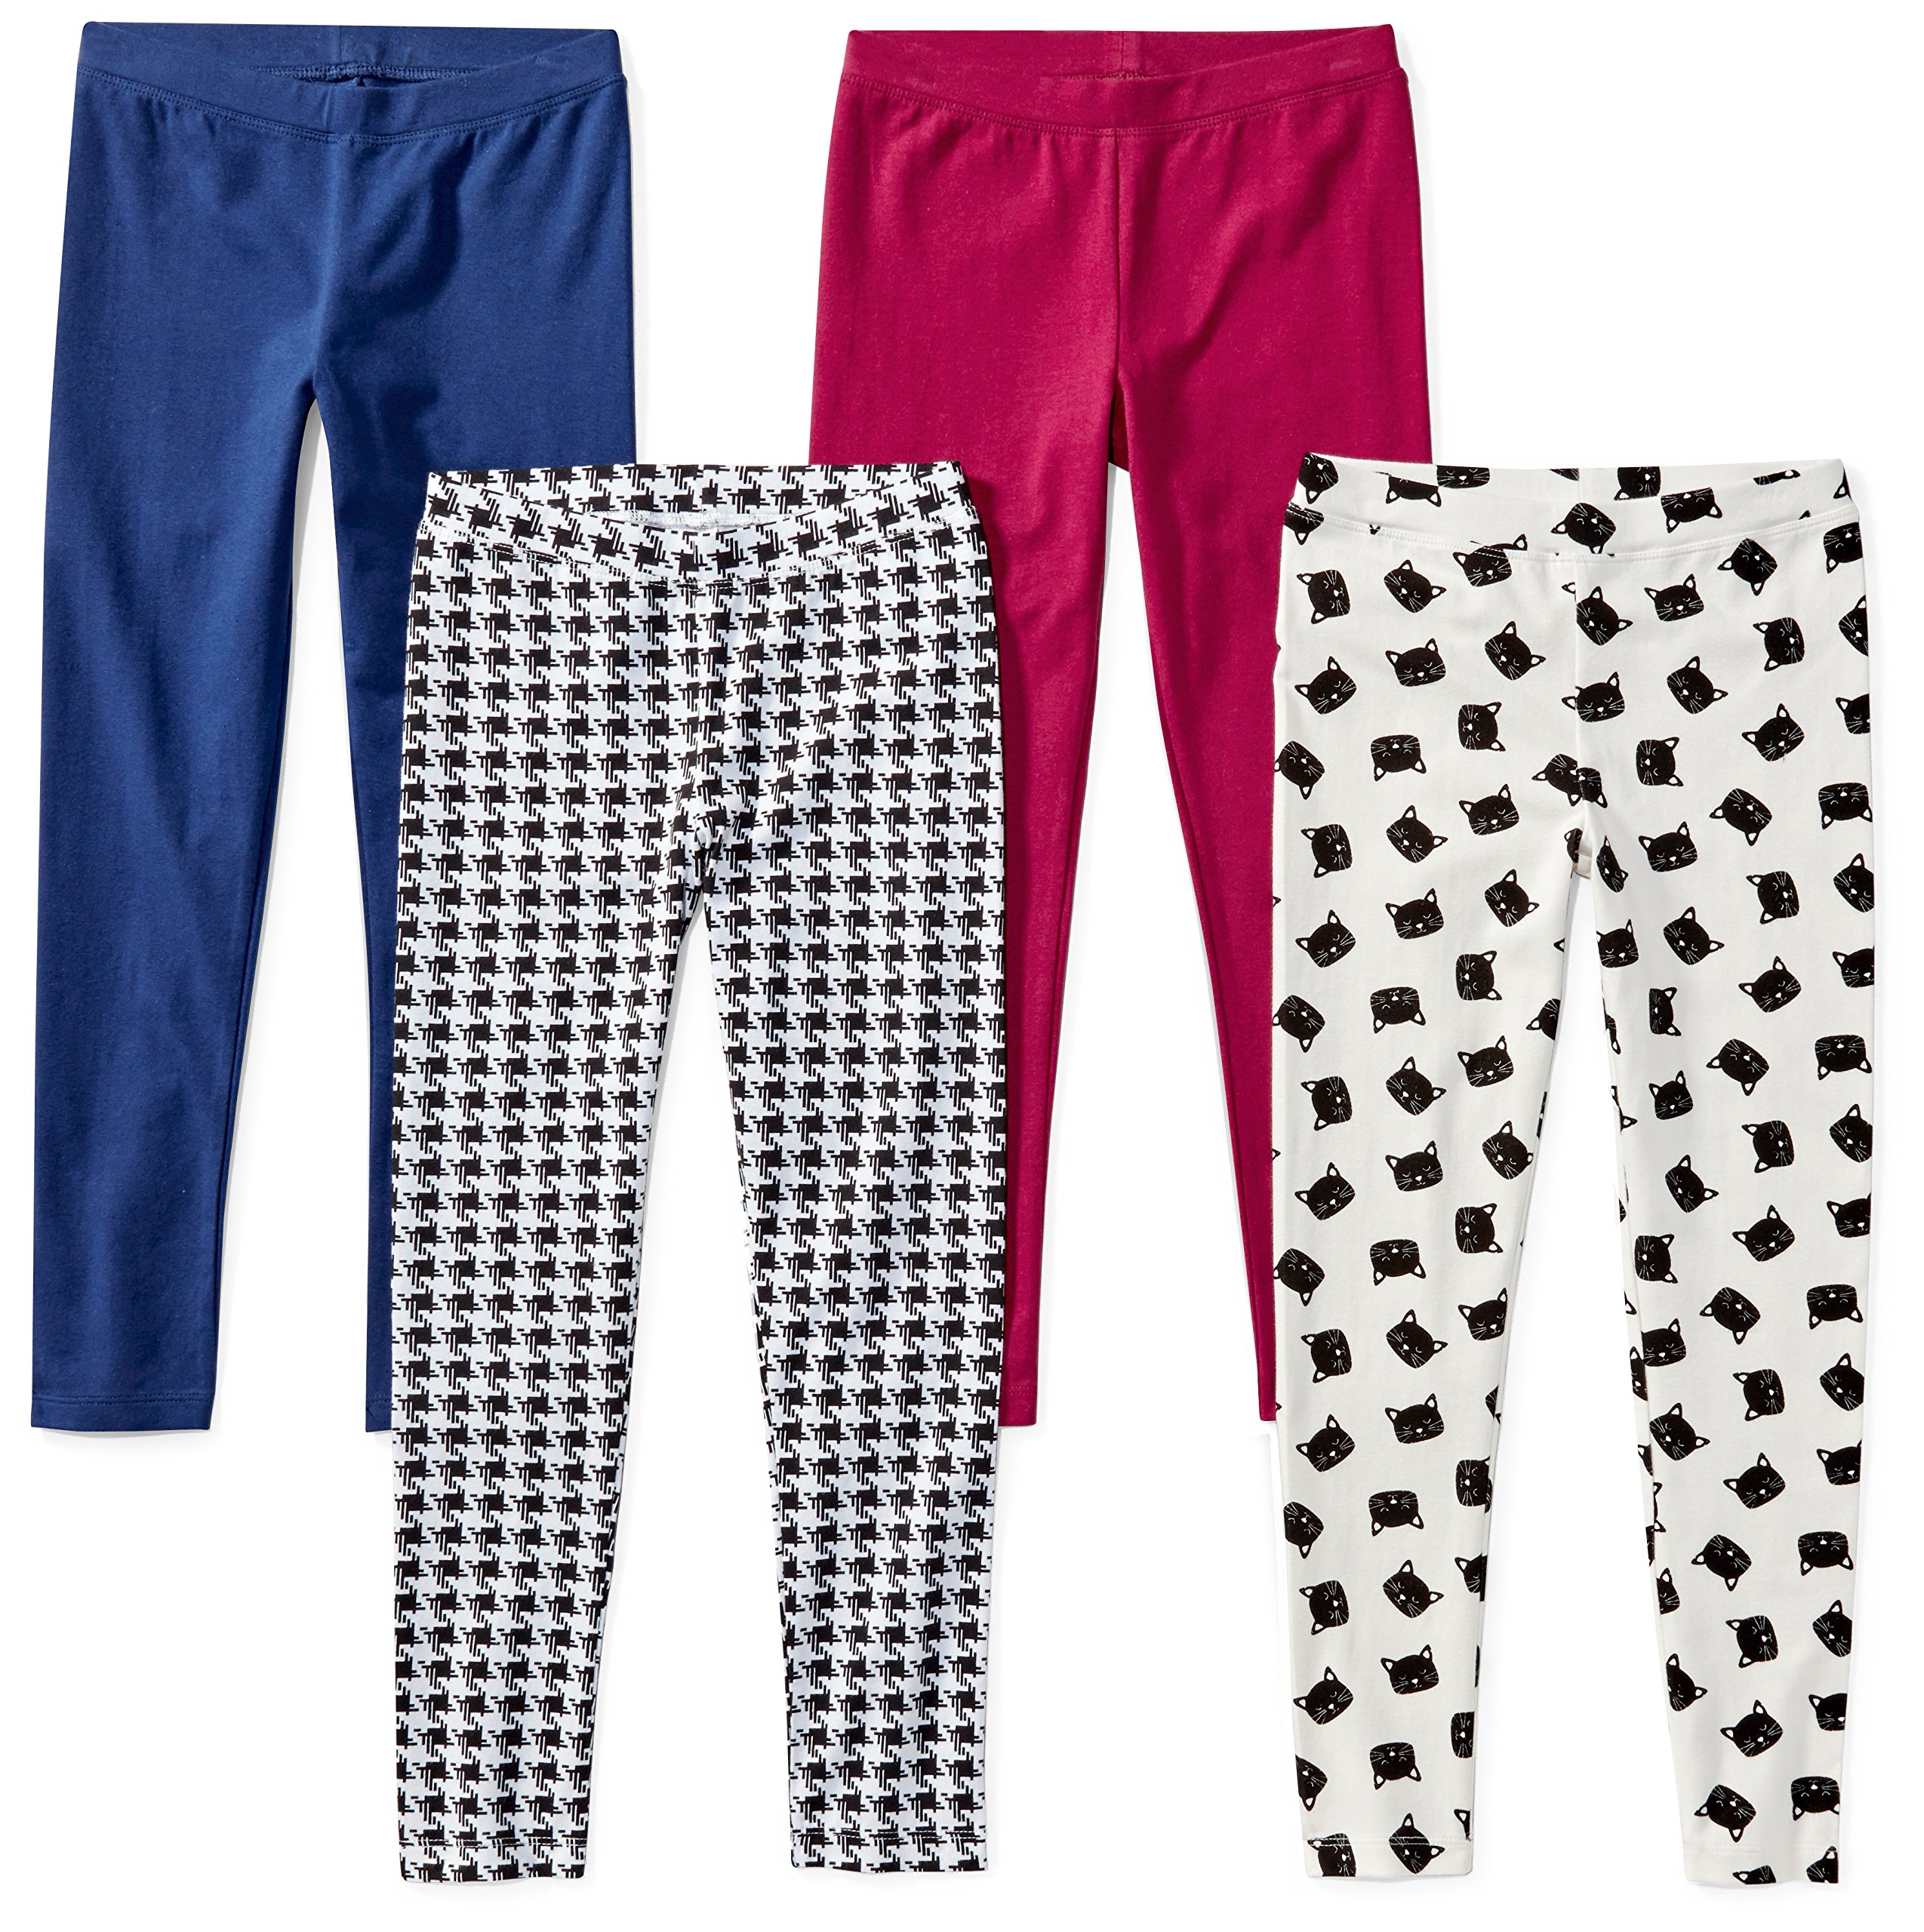 63f3e8a0a438e Amazon Brand - Spotted Zebra Girls' Toddler & Kids 4-Pack Leggings product  image